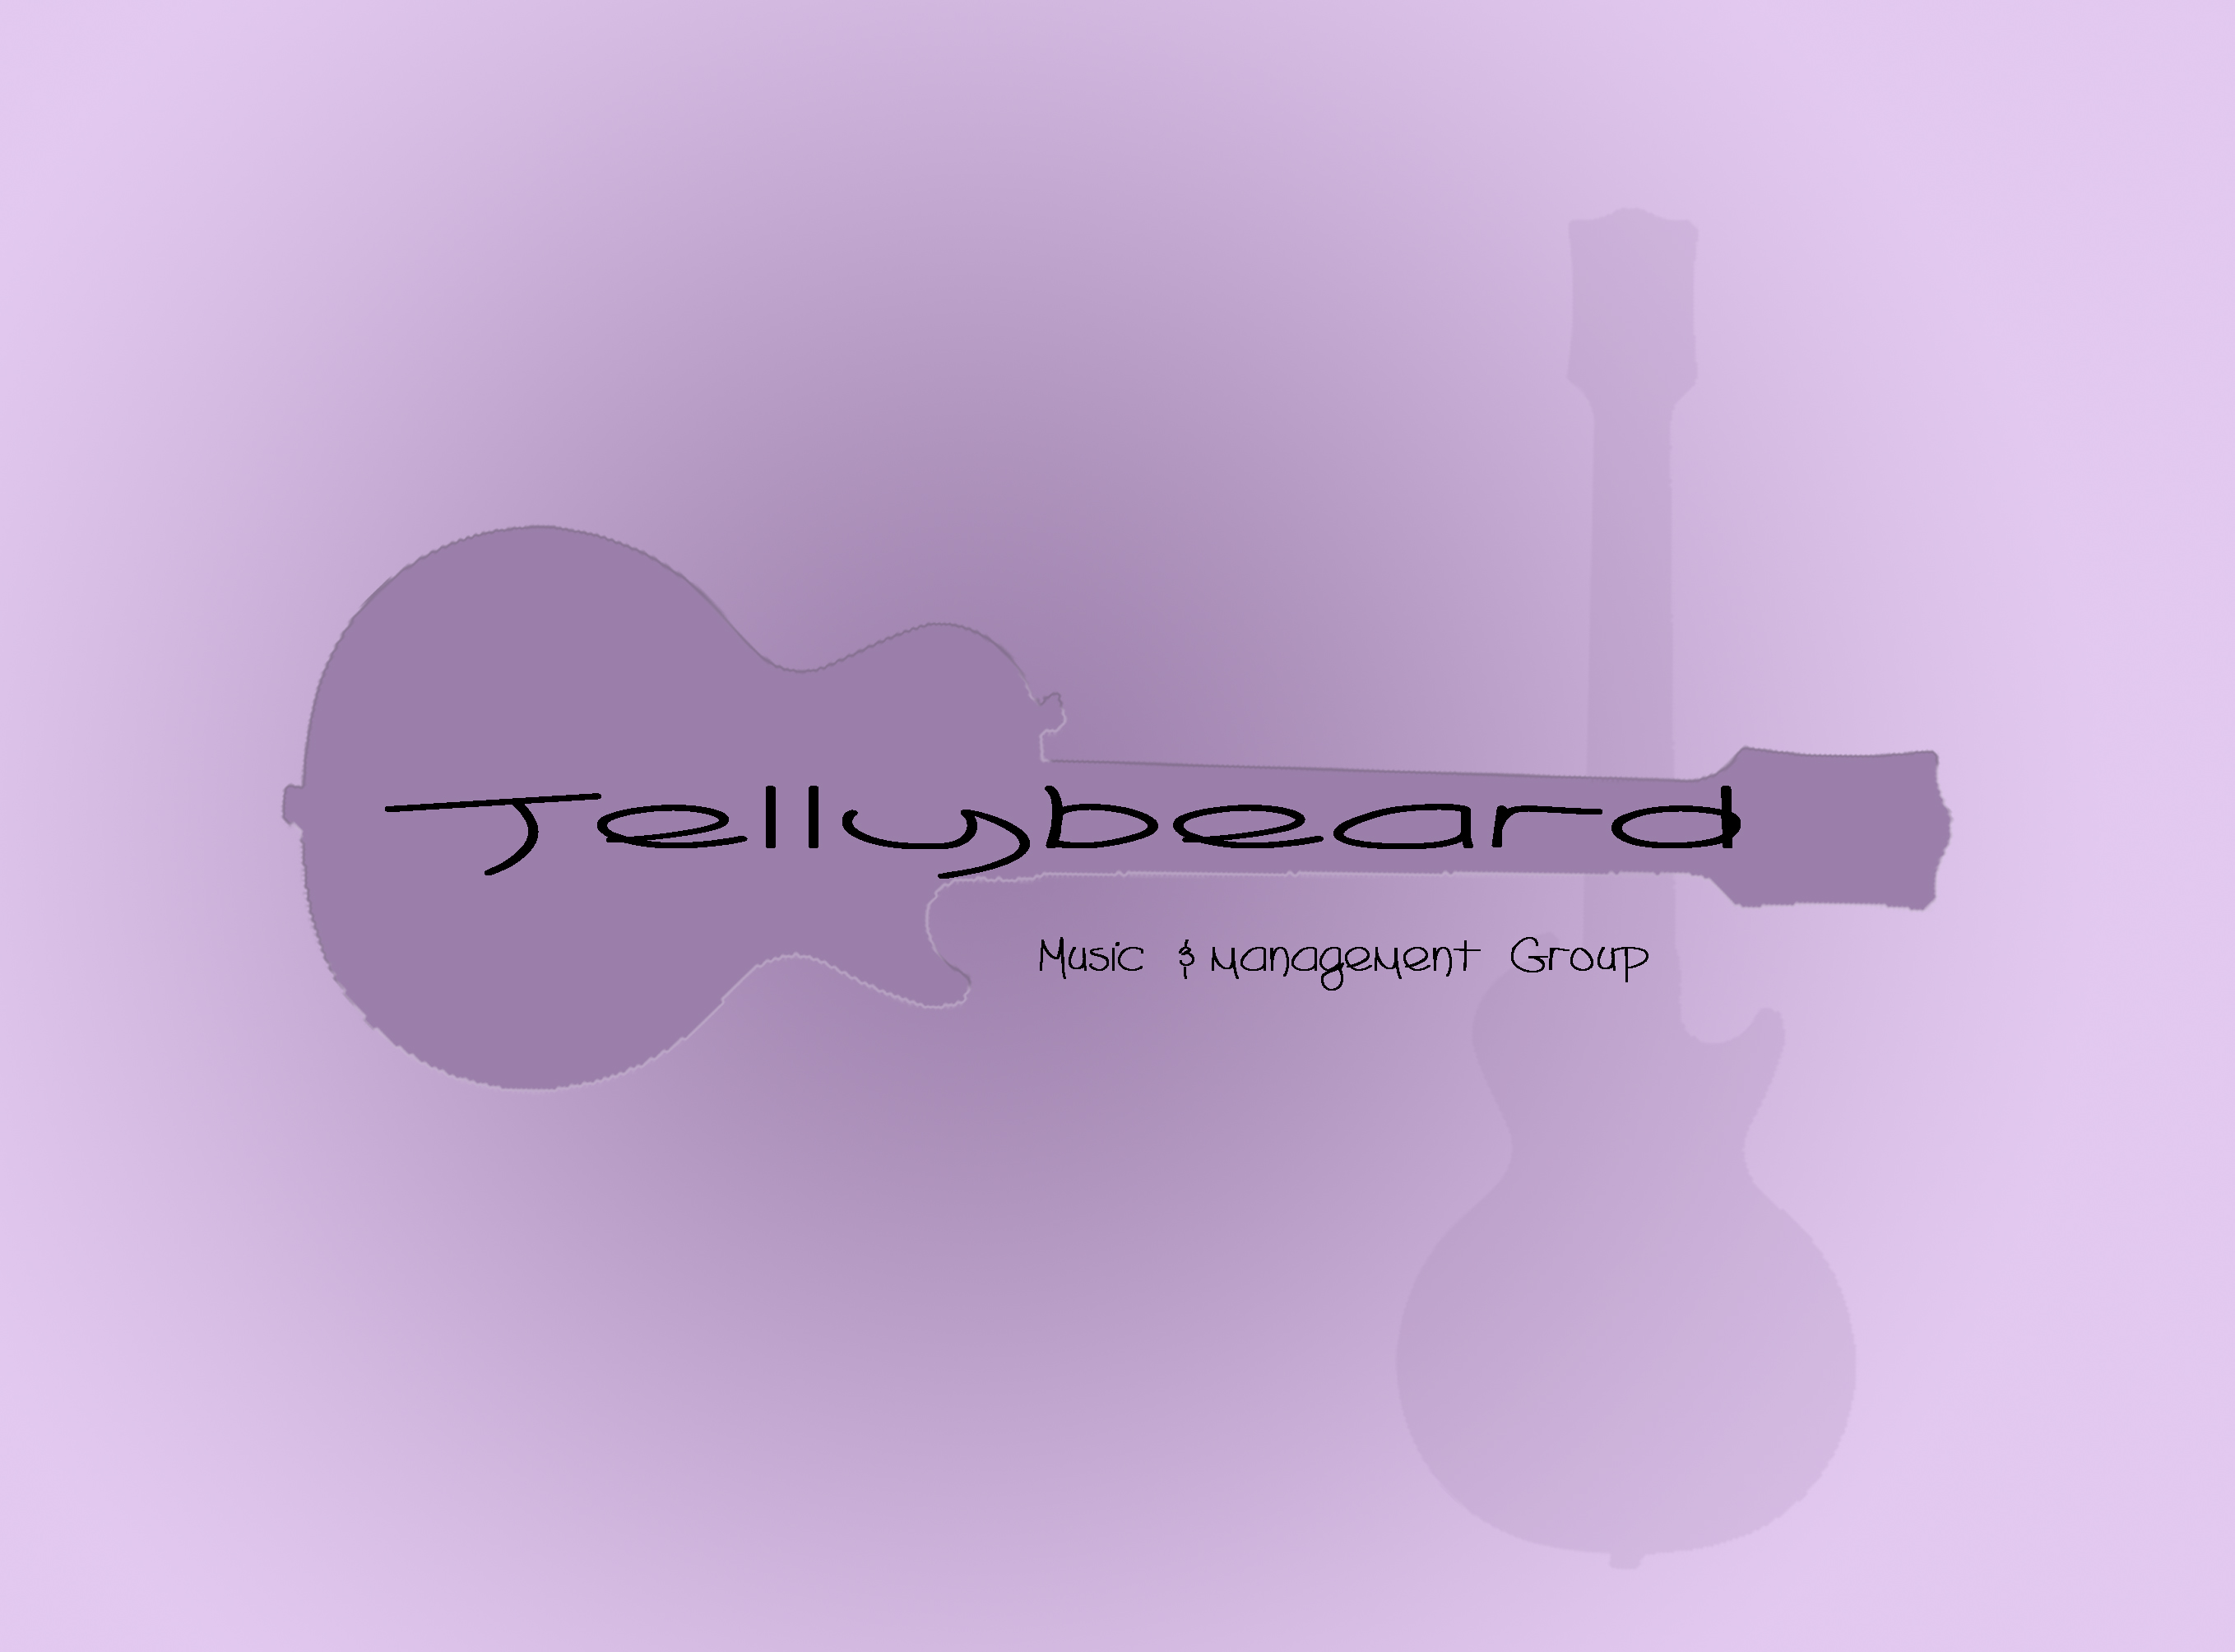 Logo Design by Talvinder Singh - Entry No. 21 in the Logo Design Contest jellybeard Logo Design.